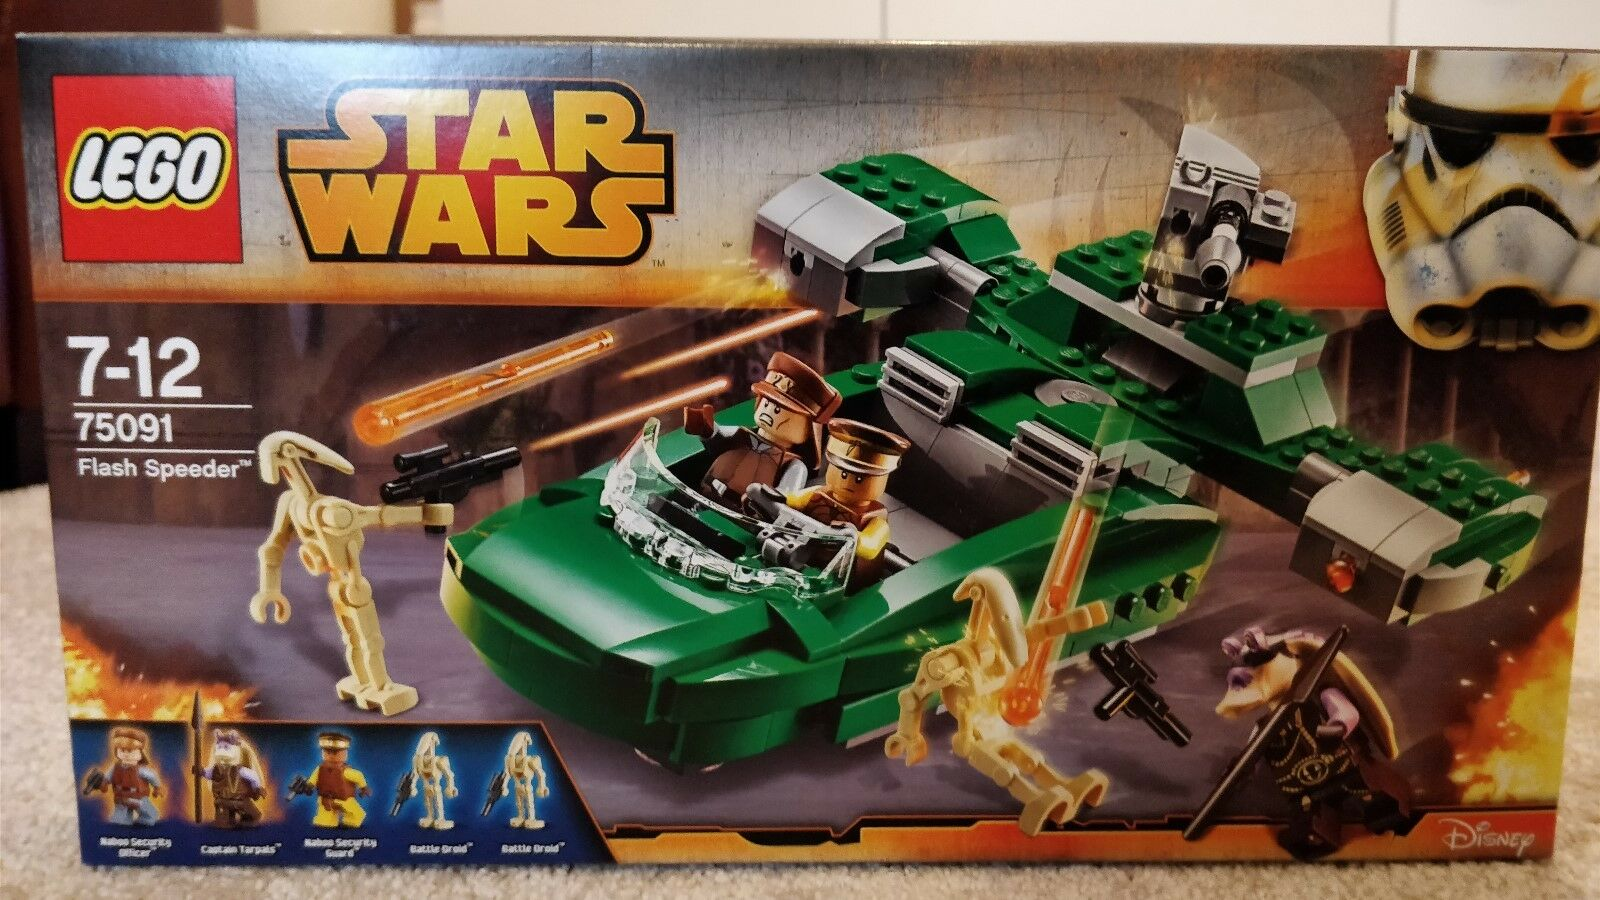 Lego Star Wars 75091 Flash Speeder NEW SEALED BNISB